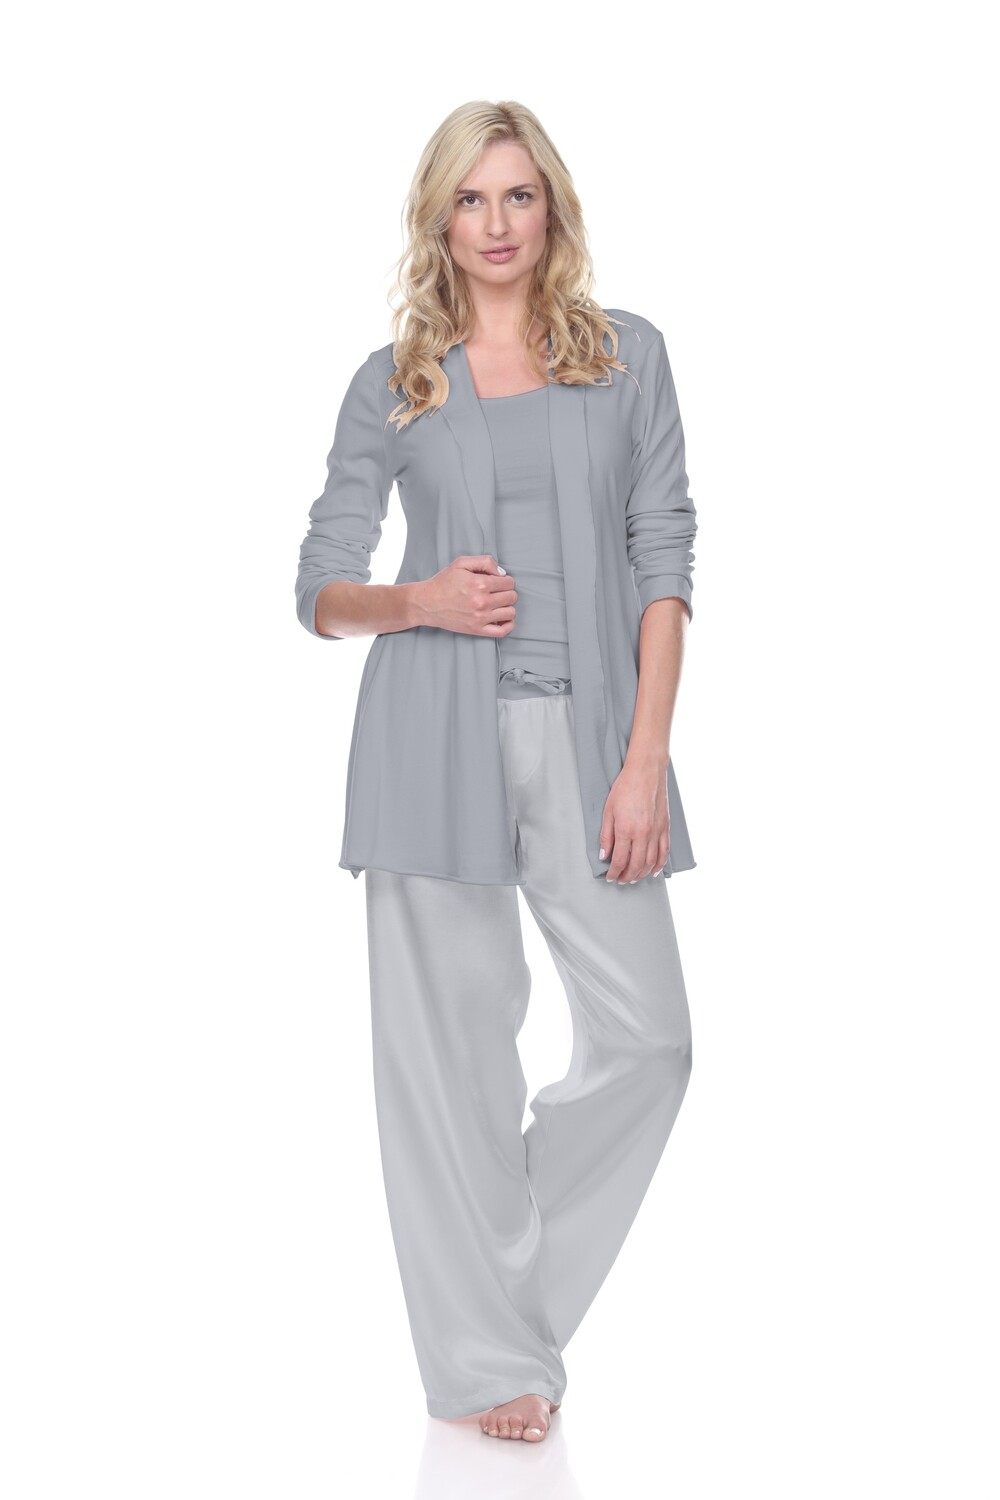 PJ Harlow Amelia Women's Cardigan Lounge Jacket- silver grey - phasing out color    Size XS to XL